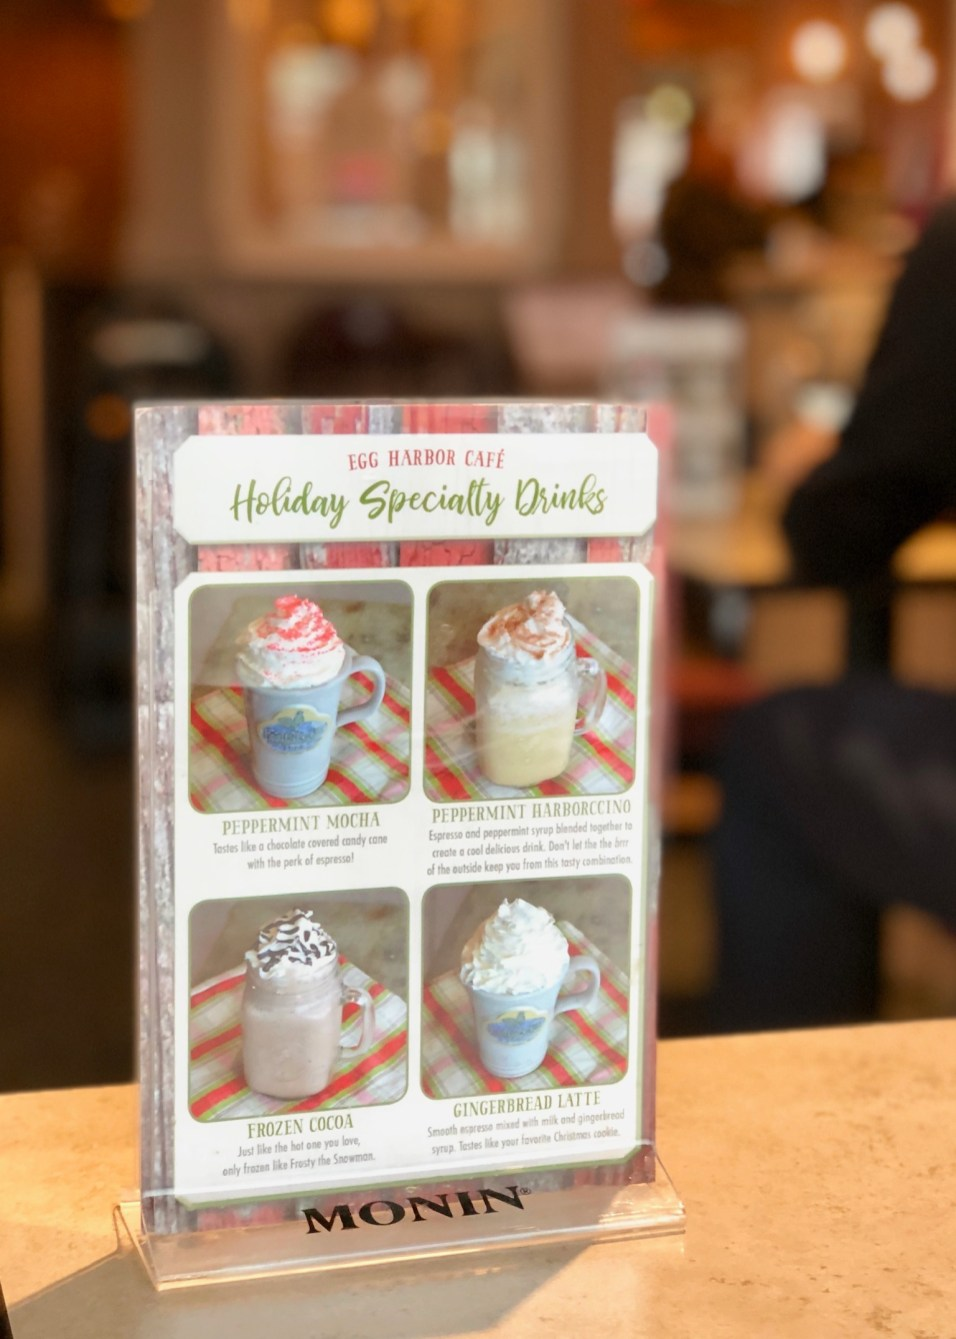 Egg Harbor Cafe - Holiday Specialty Drinks - 1